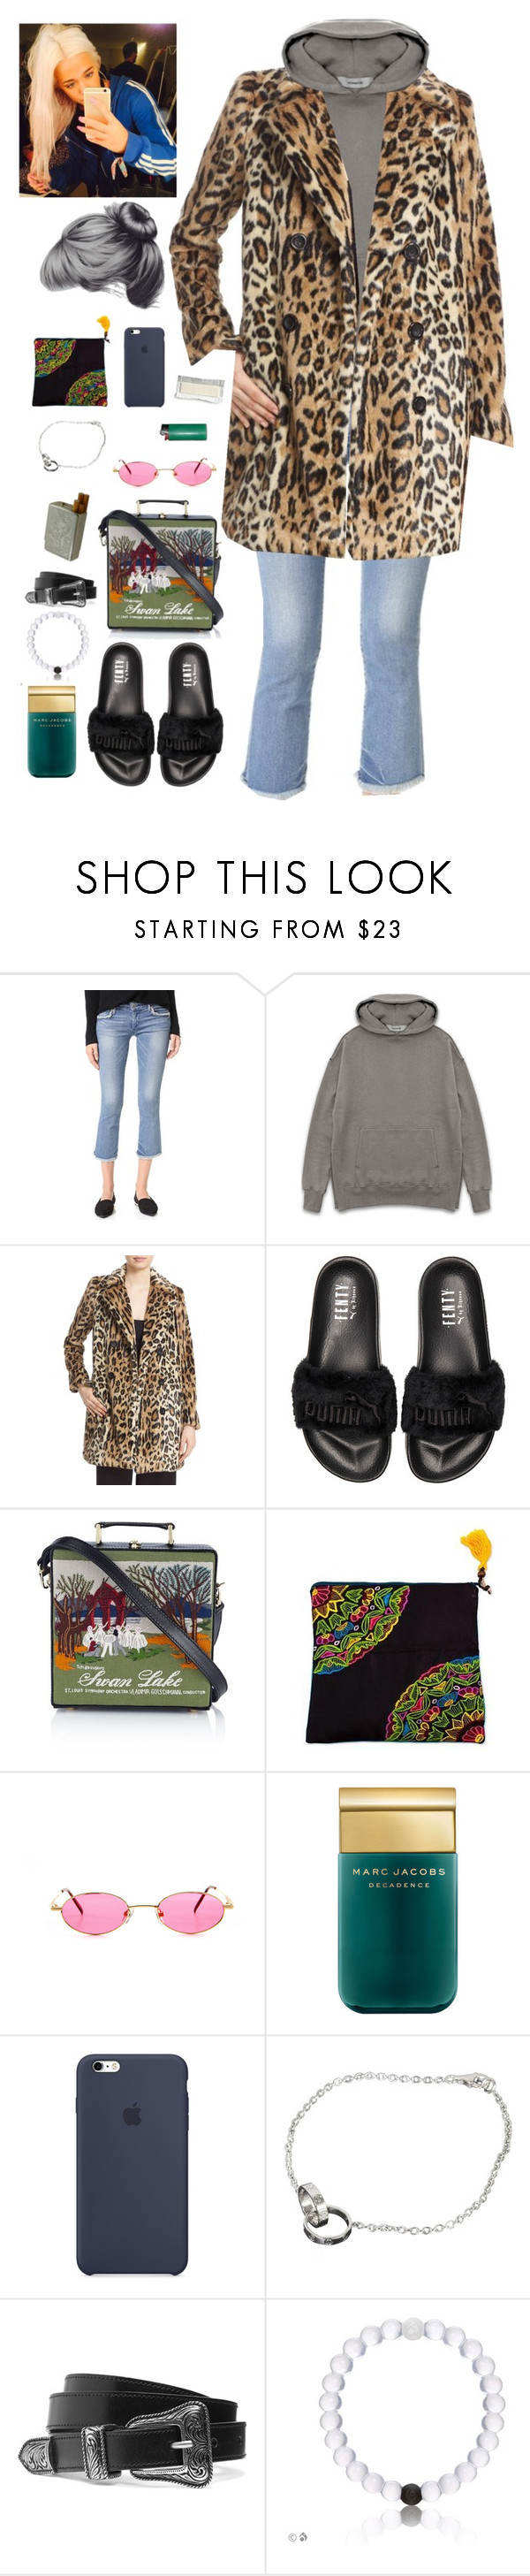 """""""B-studio with Lottie for a photoshoot"""" by onedirectionnhllz ❤ liked on Polyvore featuring True Religion, Alice + Olivia, Puma, Olympia Le-Tan, NOVICA, Gucci, Marc Jacobs, Cartier, Yves Saint Laurent and vintage"""